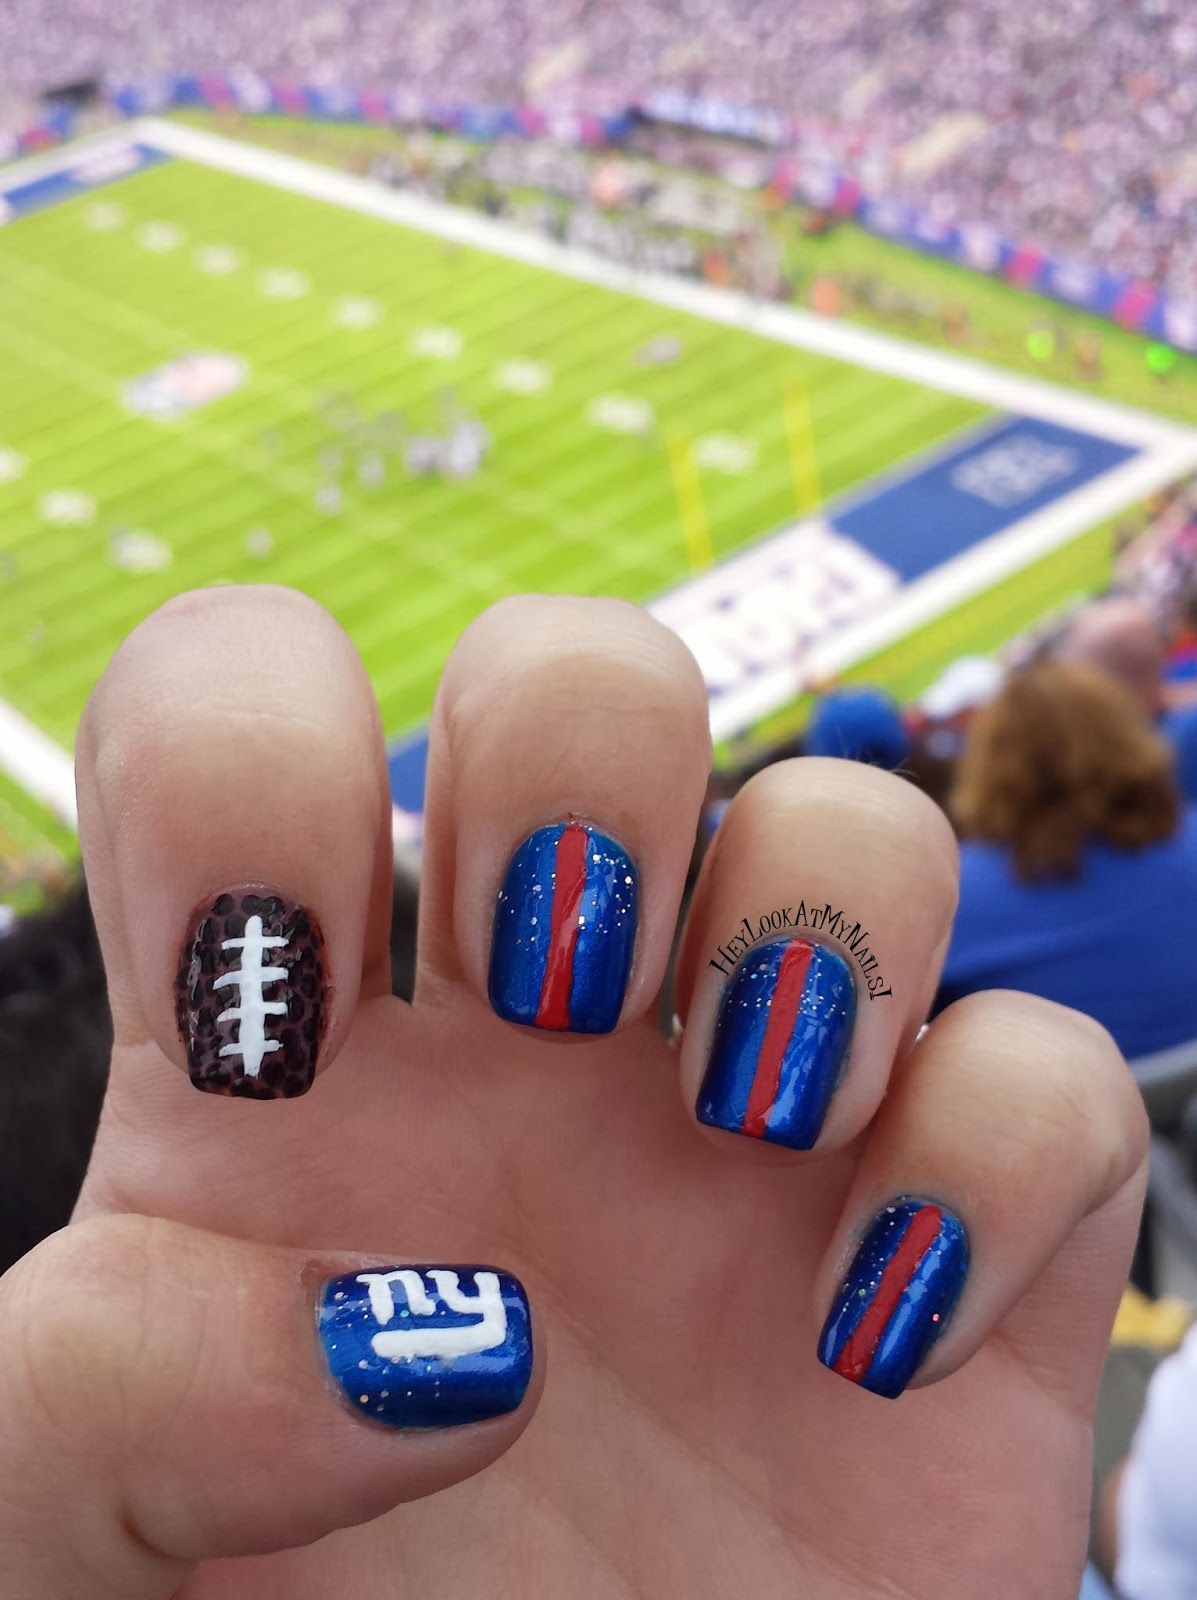 Hey, Look At My Nails!: New York Giants Nail Art